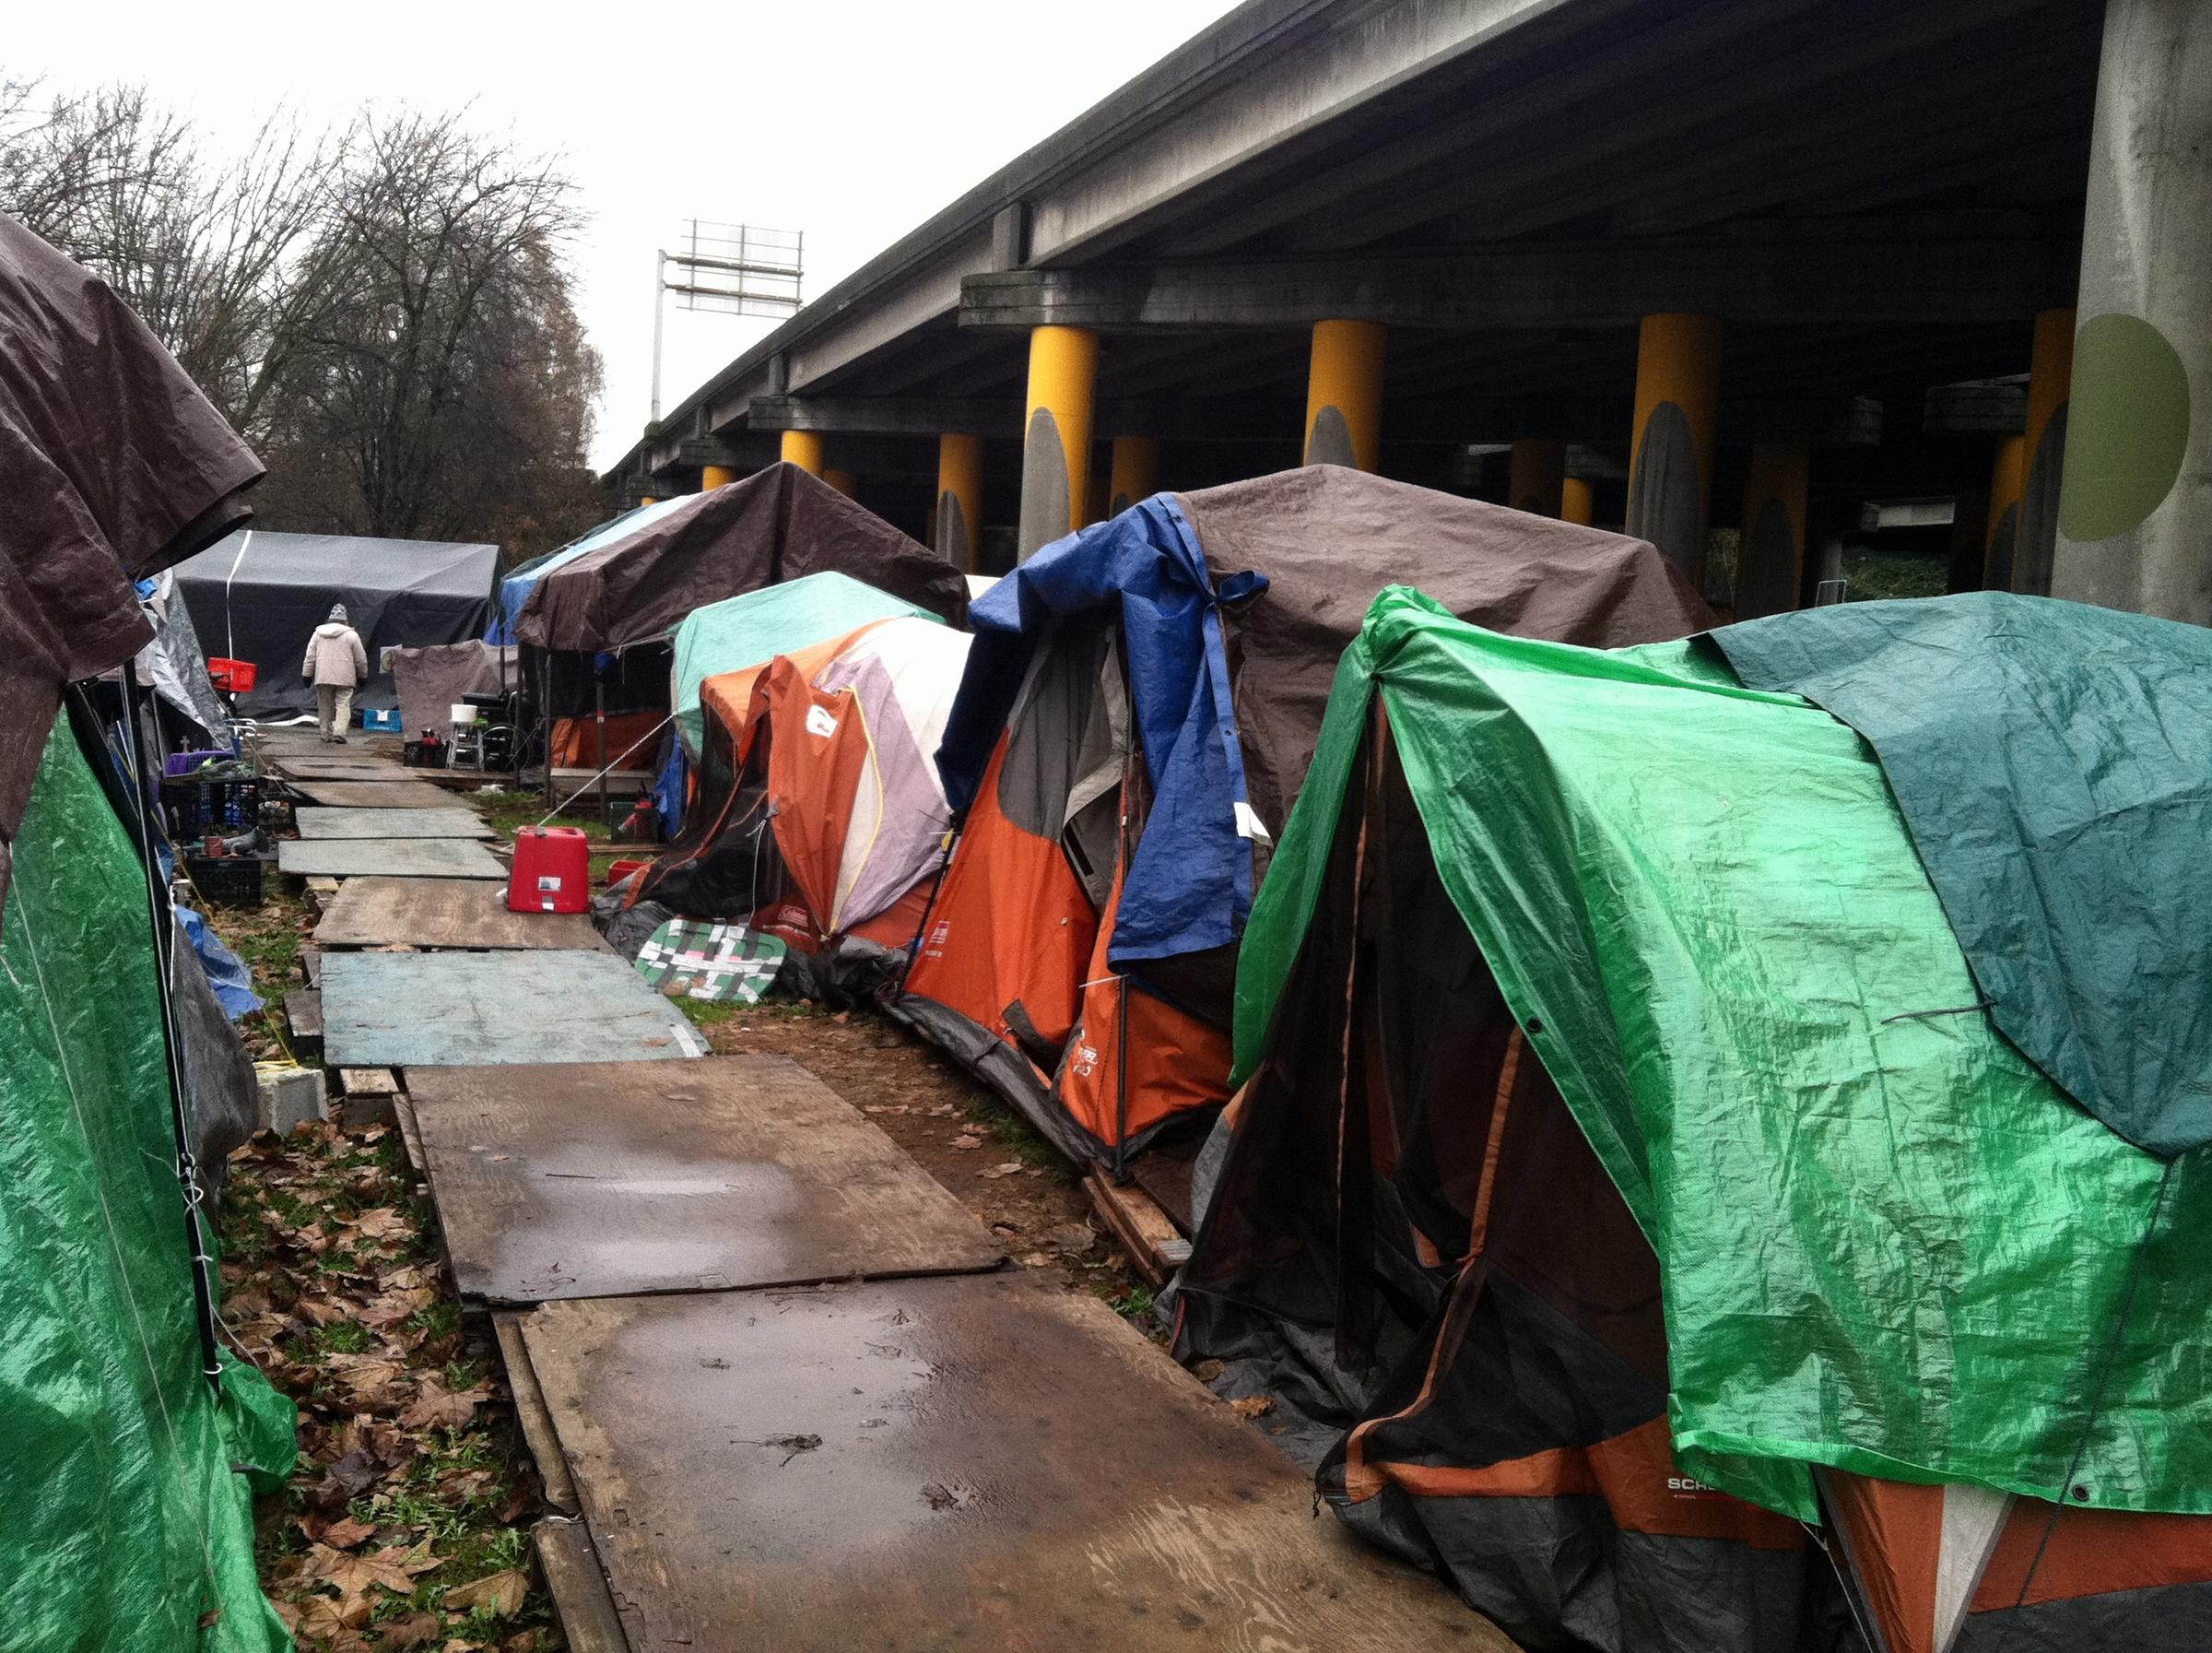 Tent City 3 under I-5 in Seattleu0027s Ravenna neighborhood. & Homelessness Task Force Recommends More Tent Cities | KUOW News ...